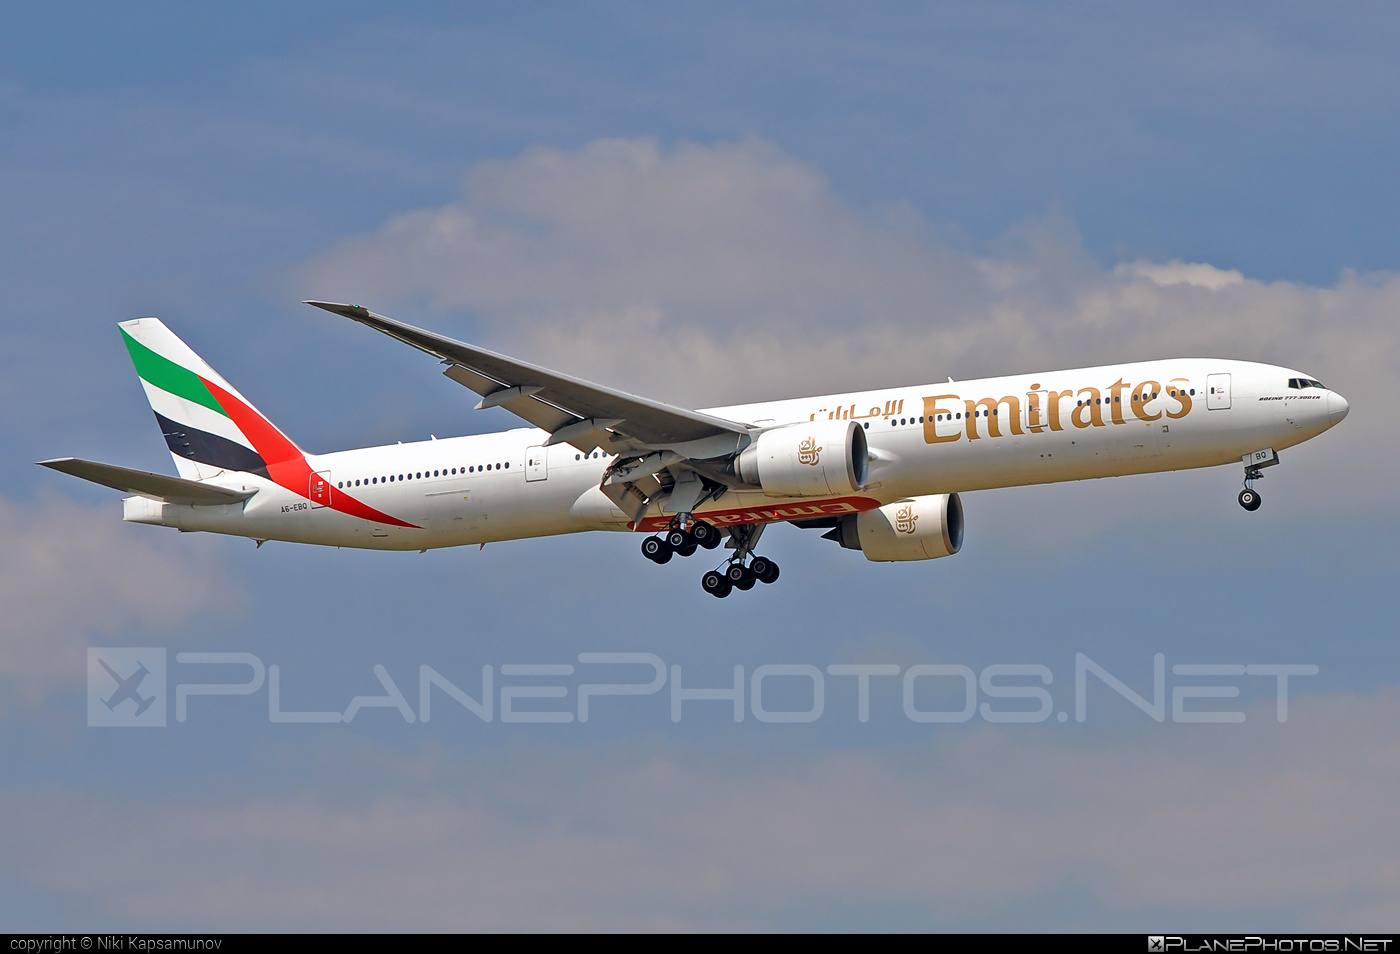 Boeing 777-300ER - A6-EBQ operated by Emirates #b777 #b777er #boeing #boeing777 #emirates #tripleseven